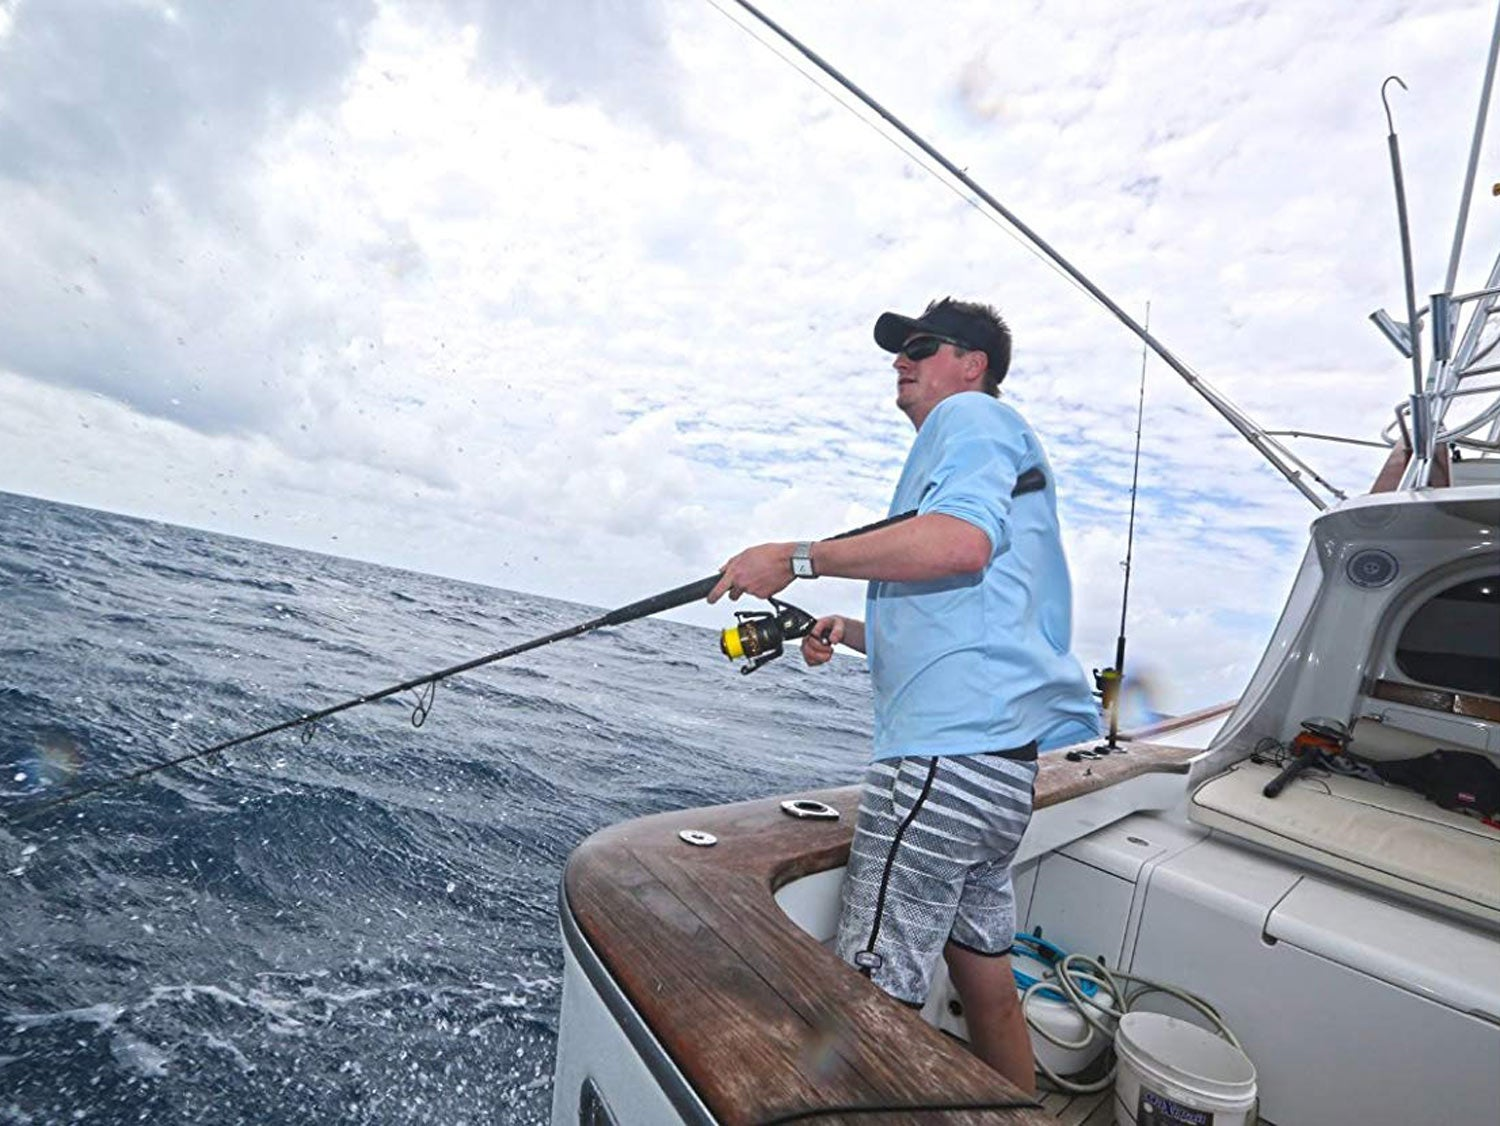 How to Choose a Spinning Rod for Surf Fishing